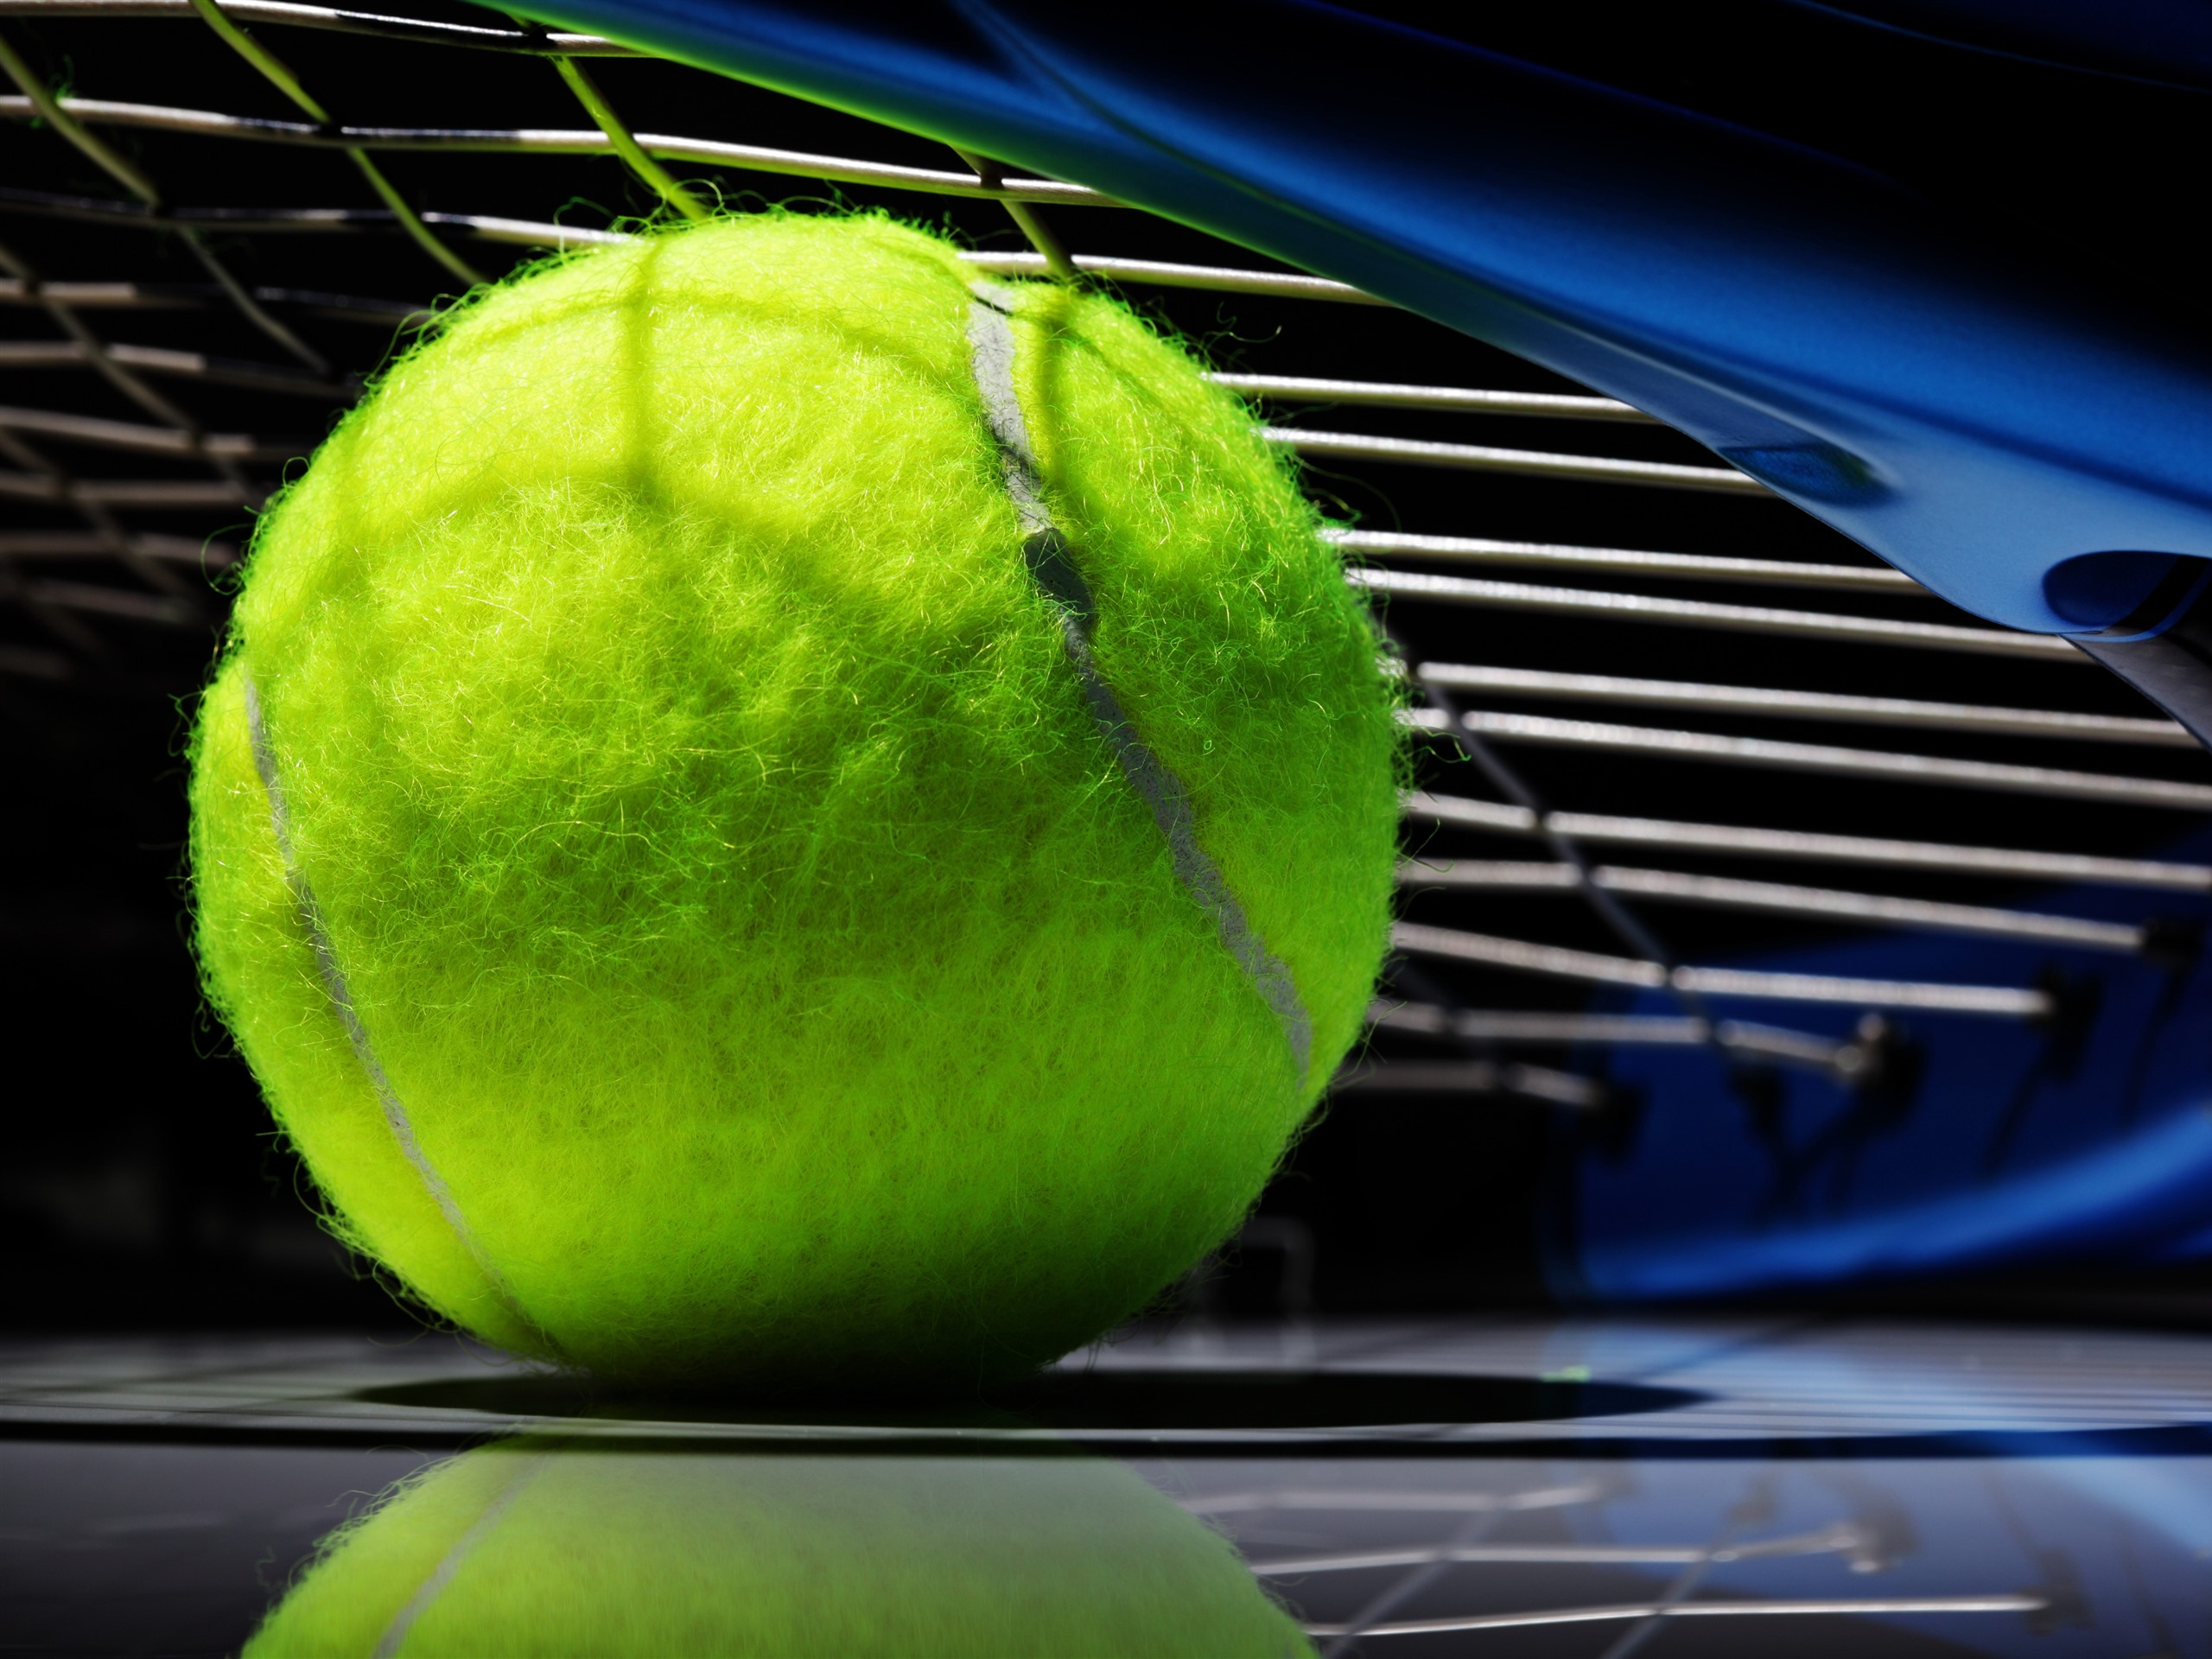 Tennis Ball Green 1242x2688 Iphone 11 Pro Xs Max Wallpaper Background Picture Image